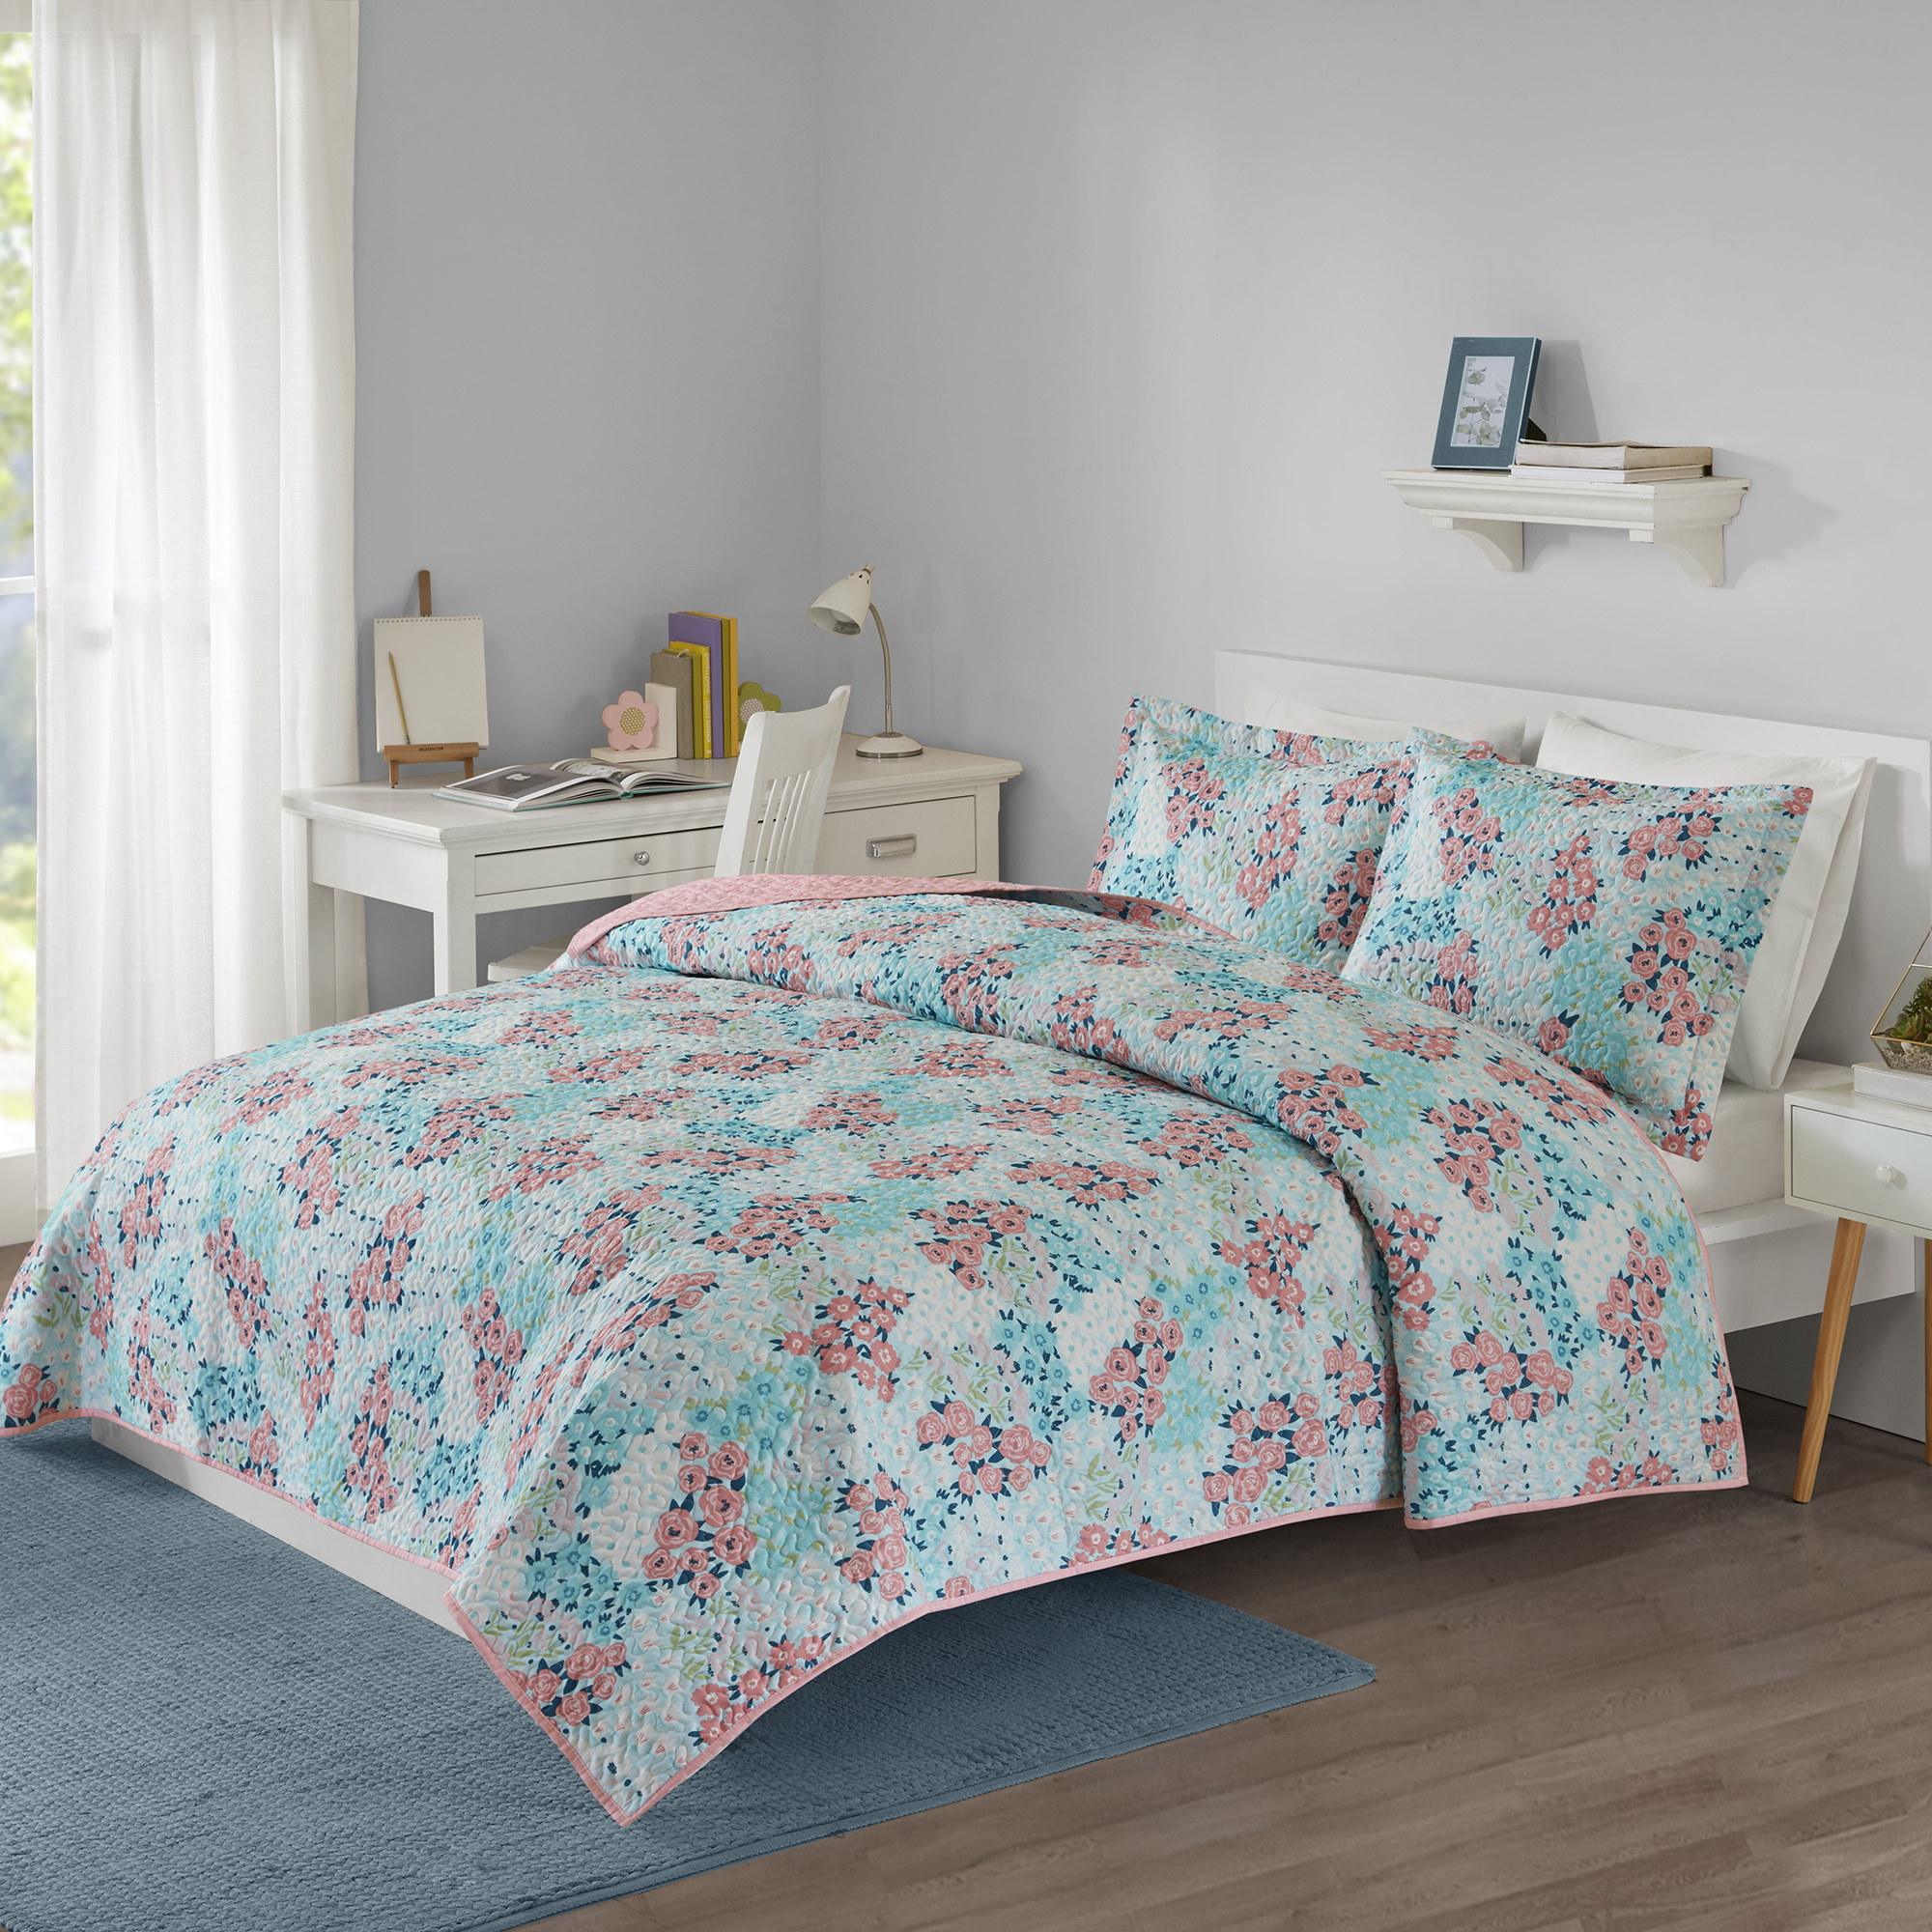 Your Zone Printed Teal Floral Mini Quilt and Sham Set